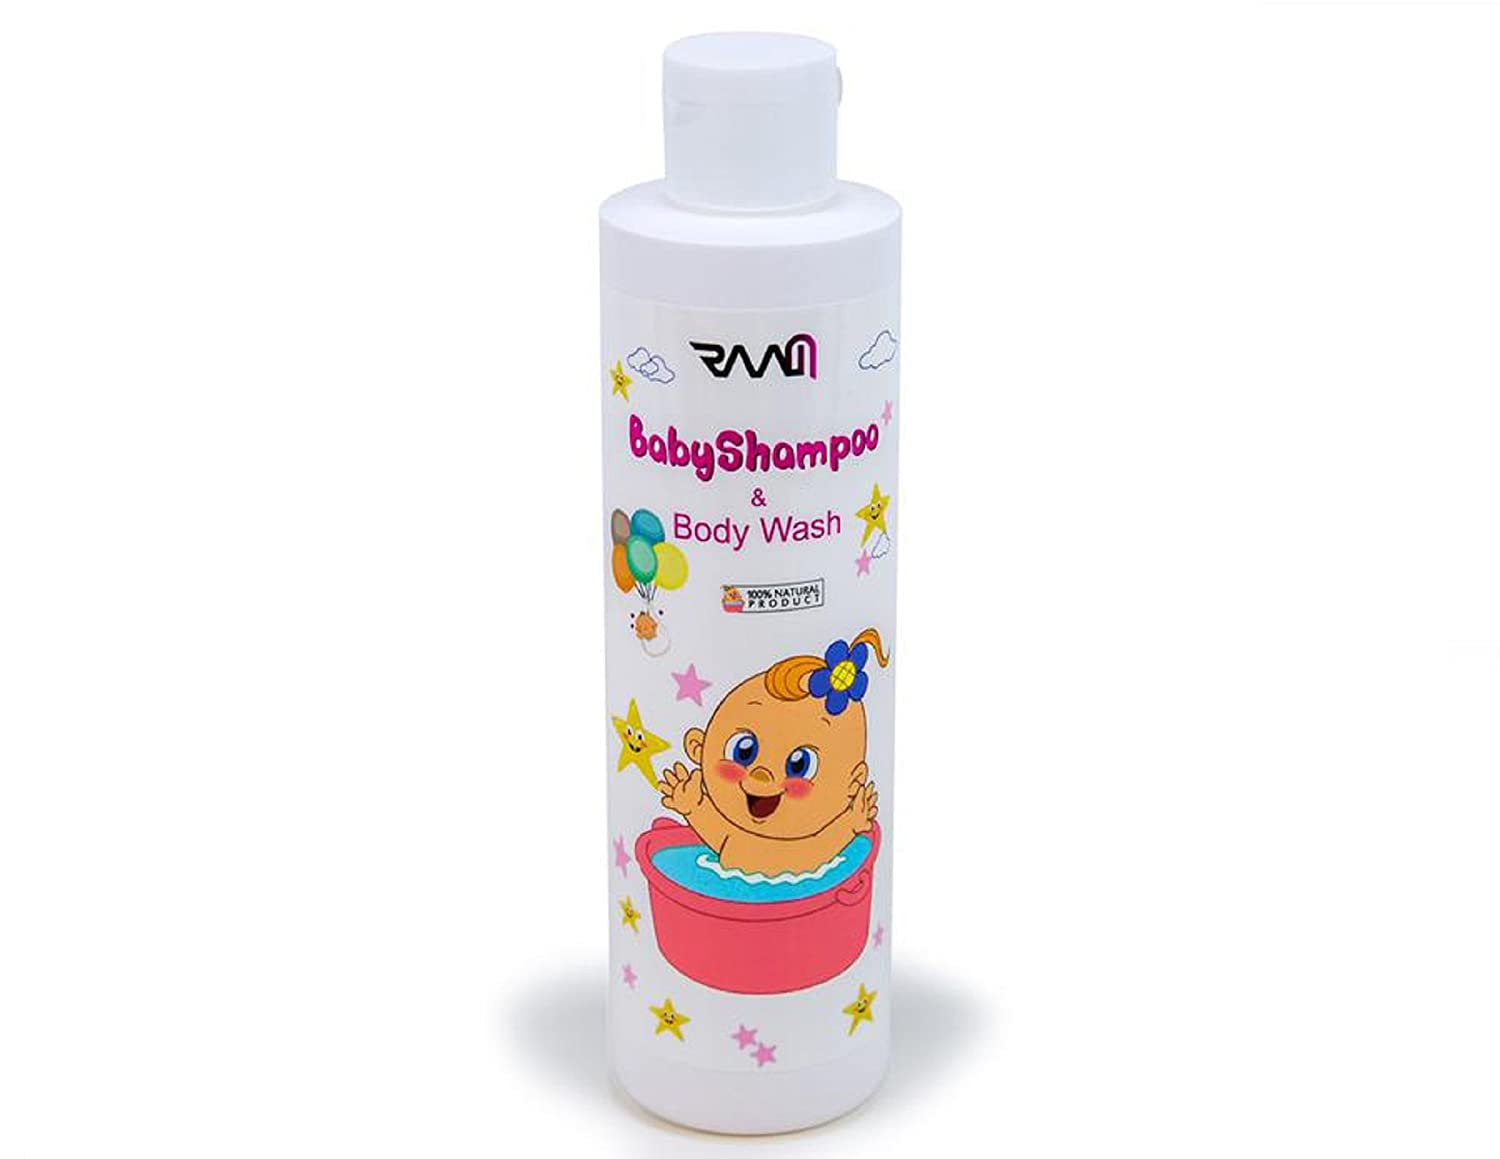 Raam Baby Shampoo And Body Wash Tear Free Mild Sweetly Cussons Liquid Cleanser 300 100ml Scented